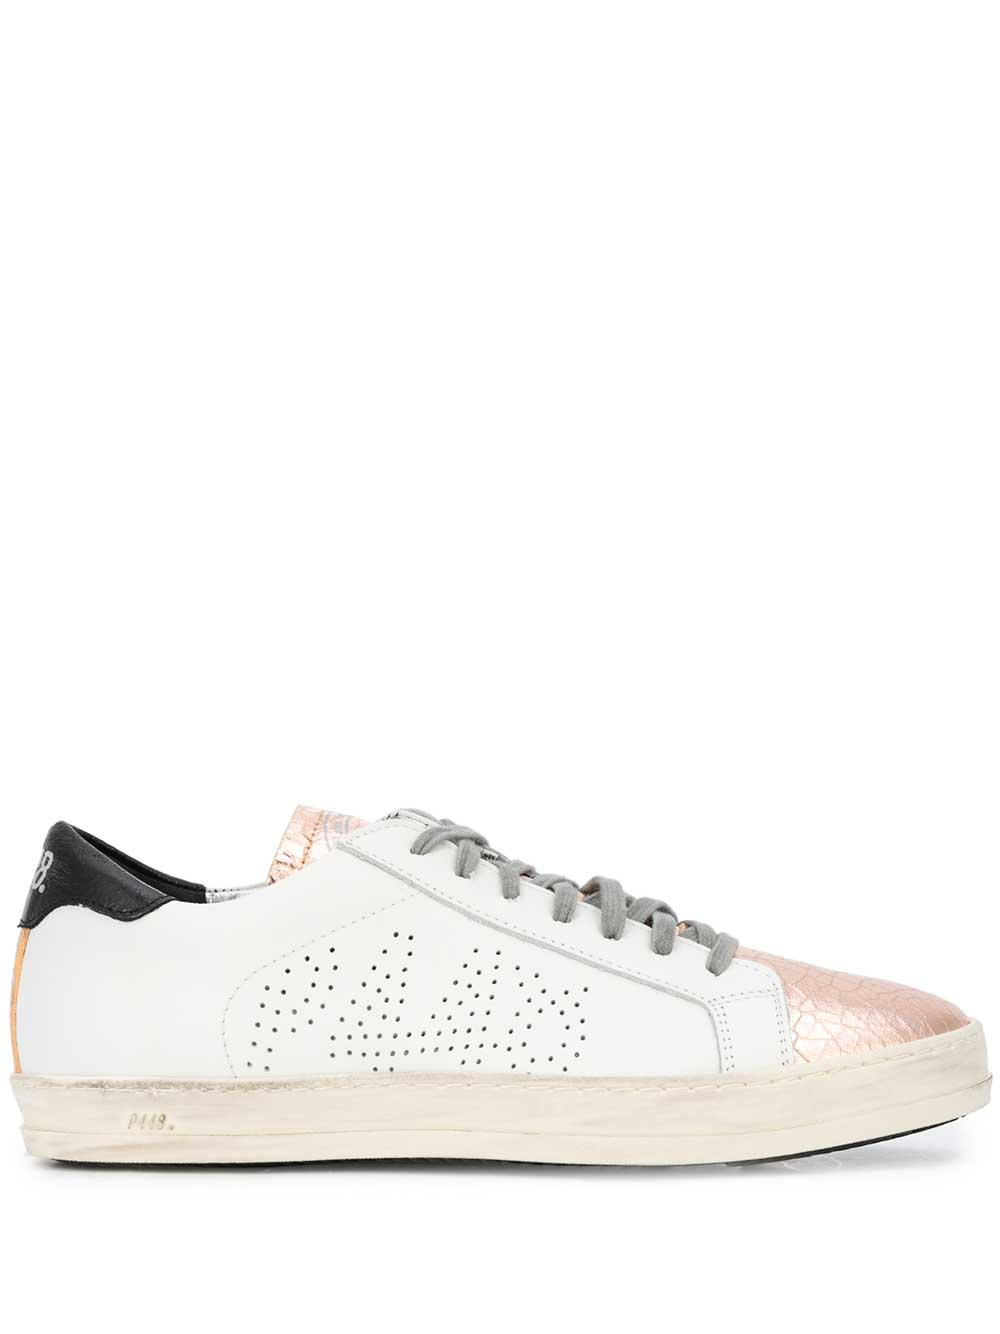 P448 Perforated Sneaker With Crackle Tongue